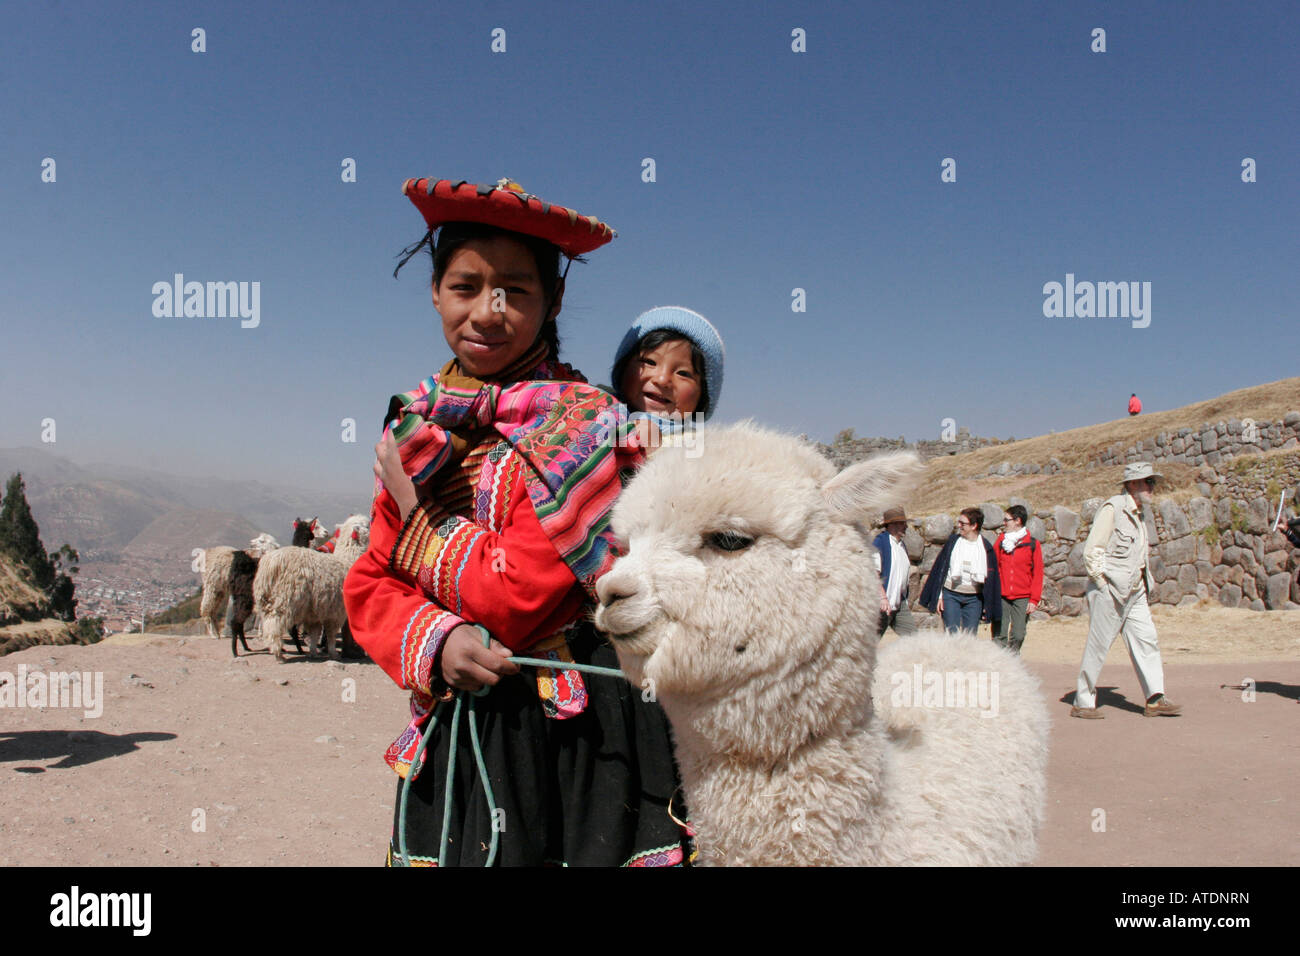 A young Peruivan girl with her baby cousin and alpaca atop the Incan ruins overlooking the city of Cusco Peru - Stock Image